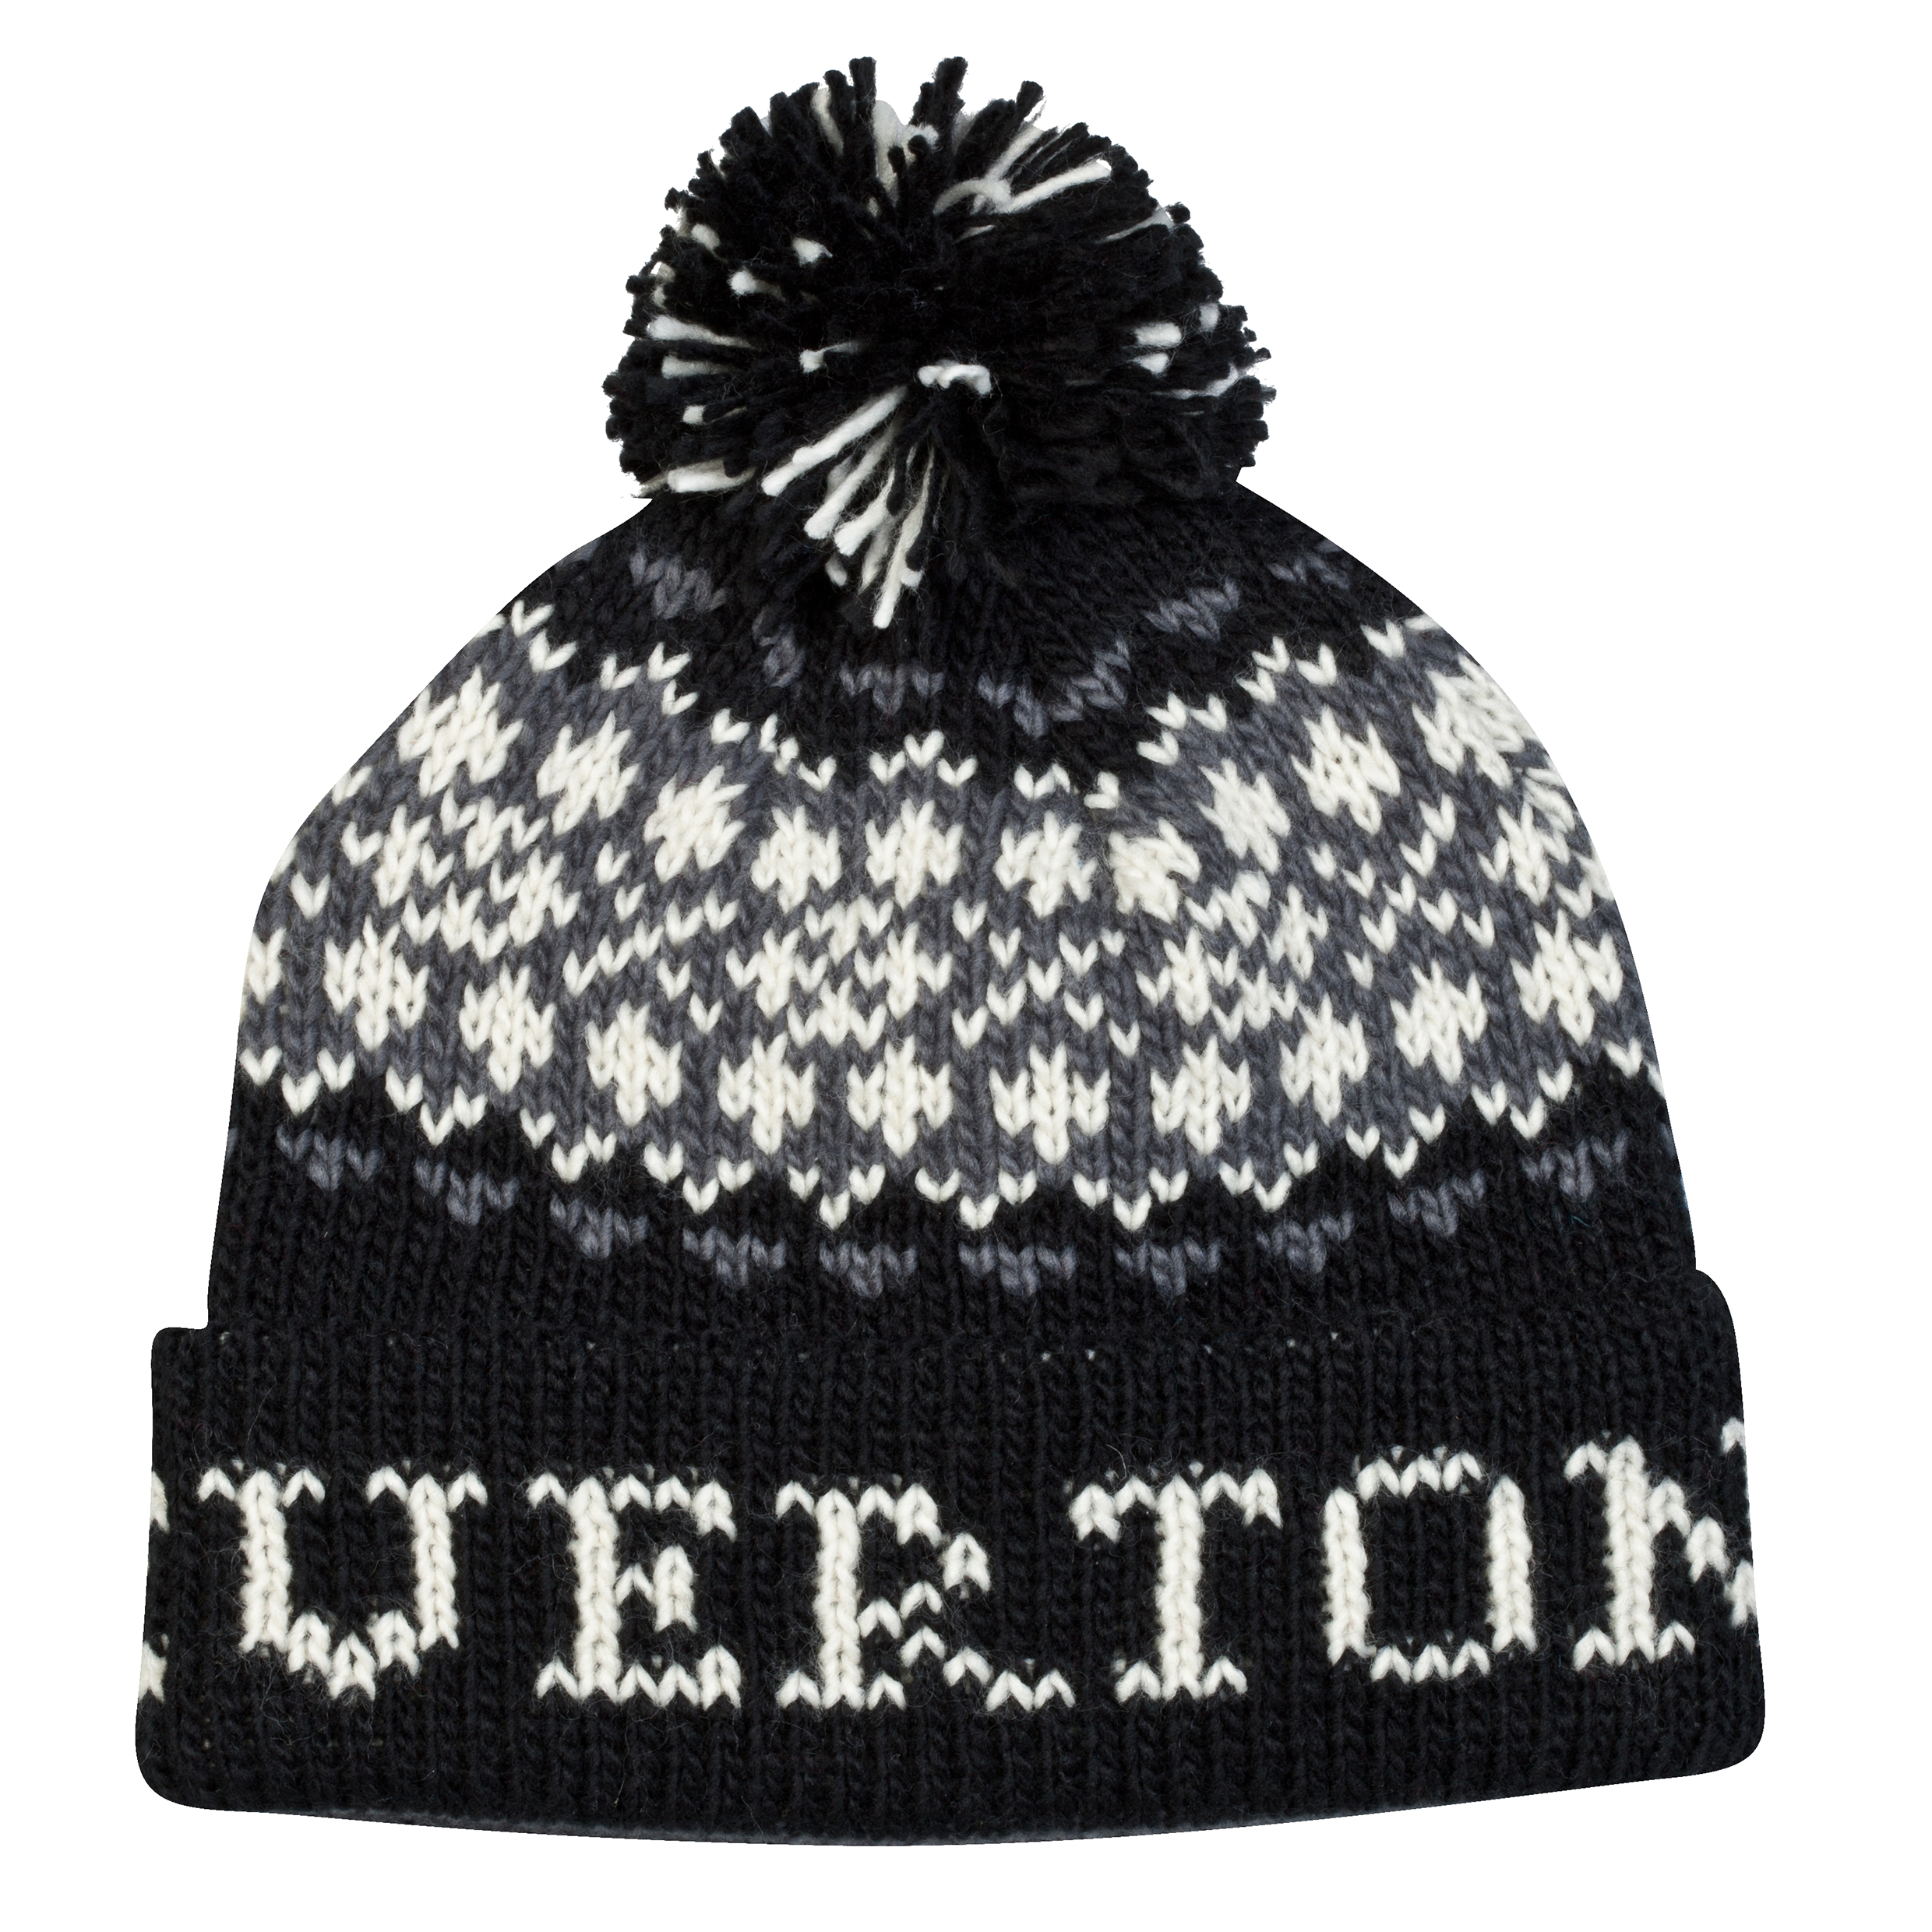 Everton Bobble Hat - Black/Grey/Ecru - Adult